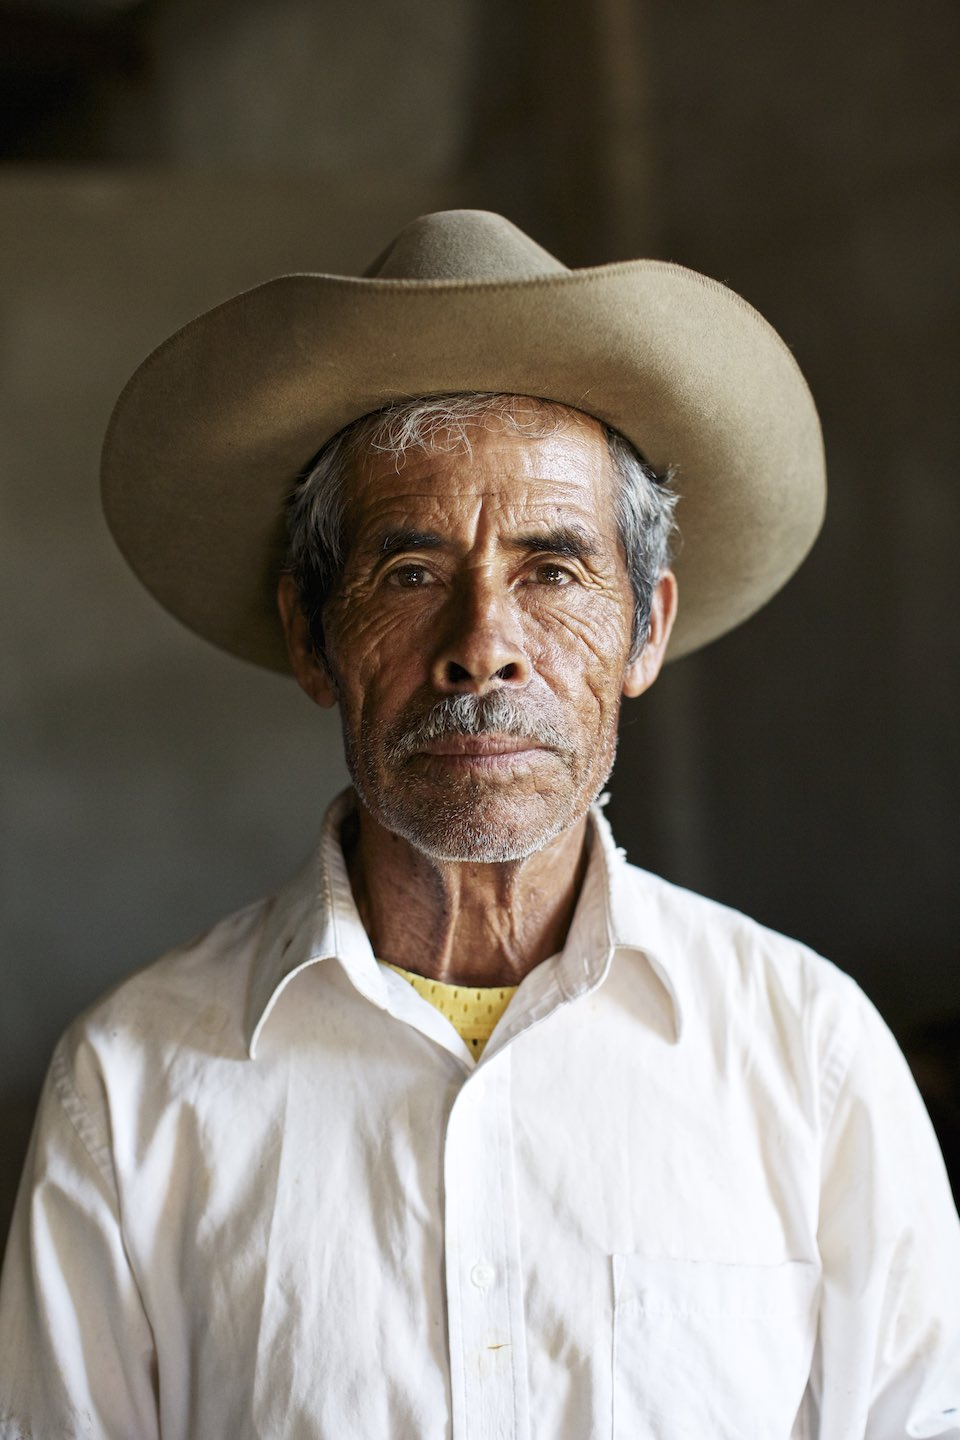 Portrait of mezcal farmer in a white button down and brown hat.